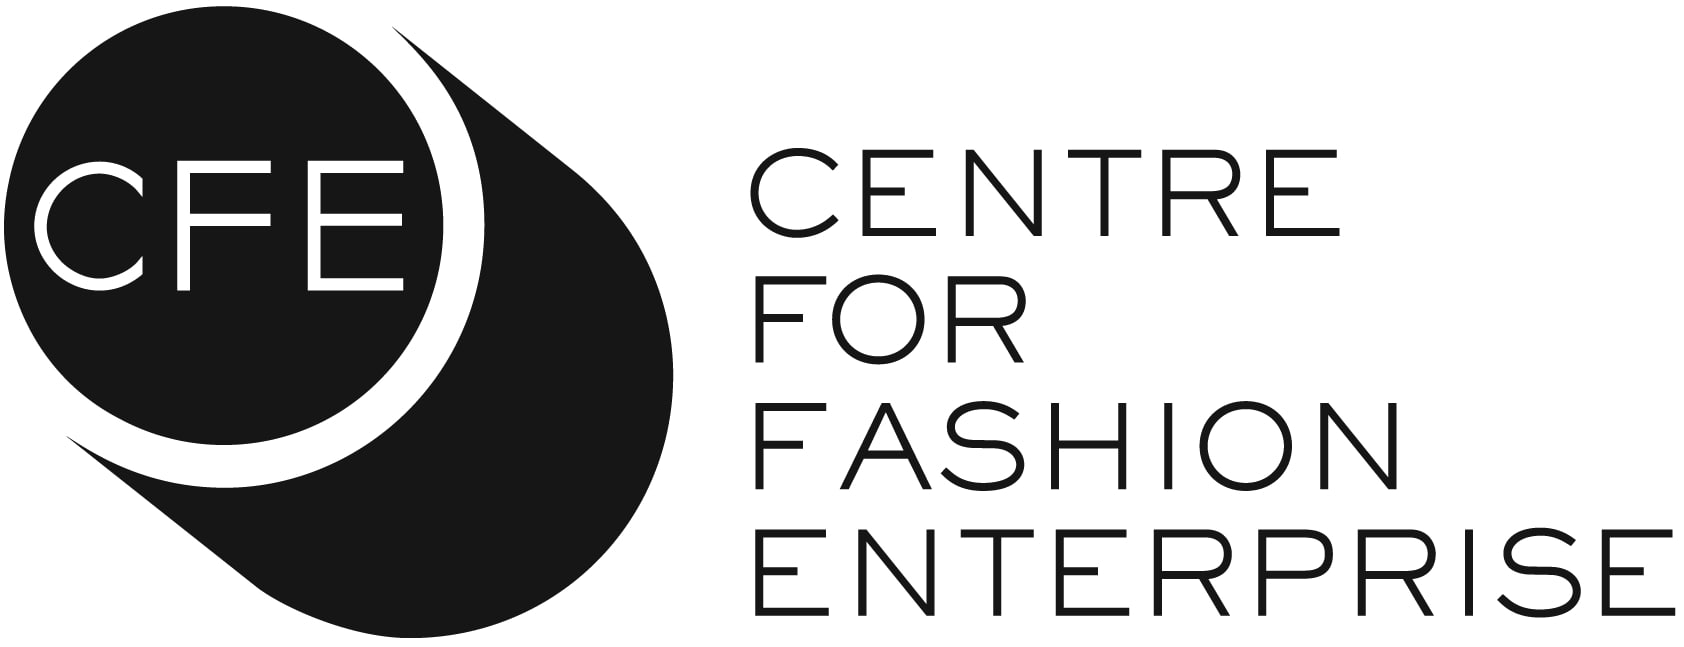 Centre for Fashion Enterprise